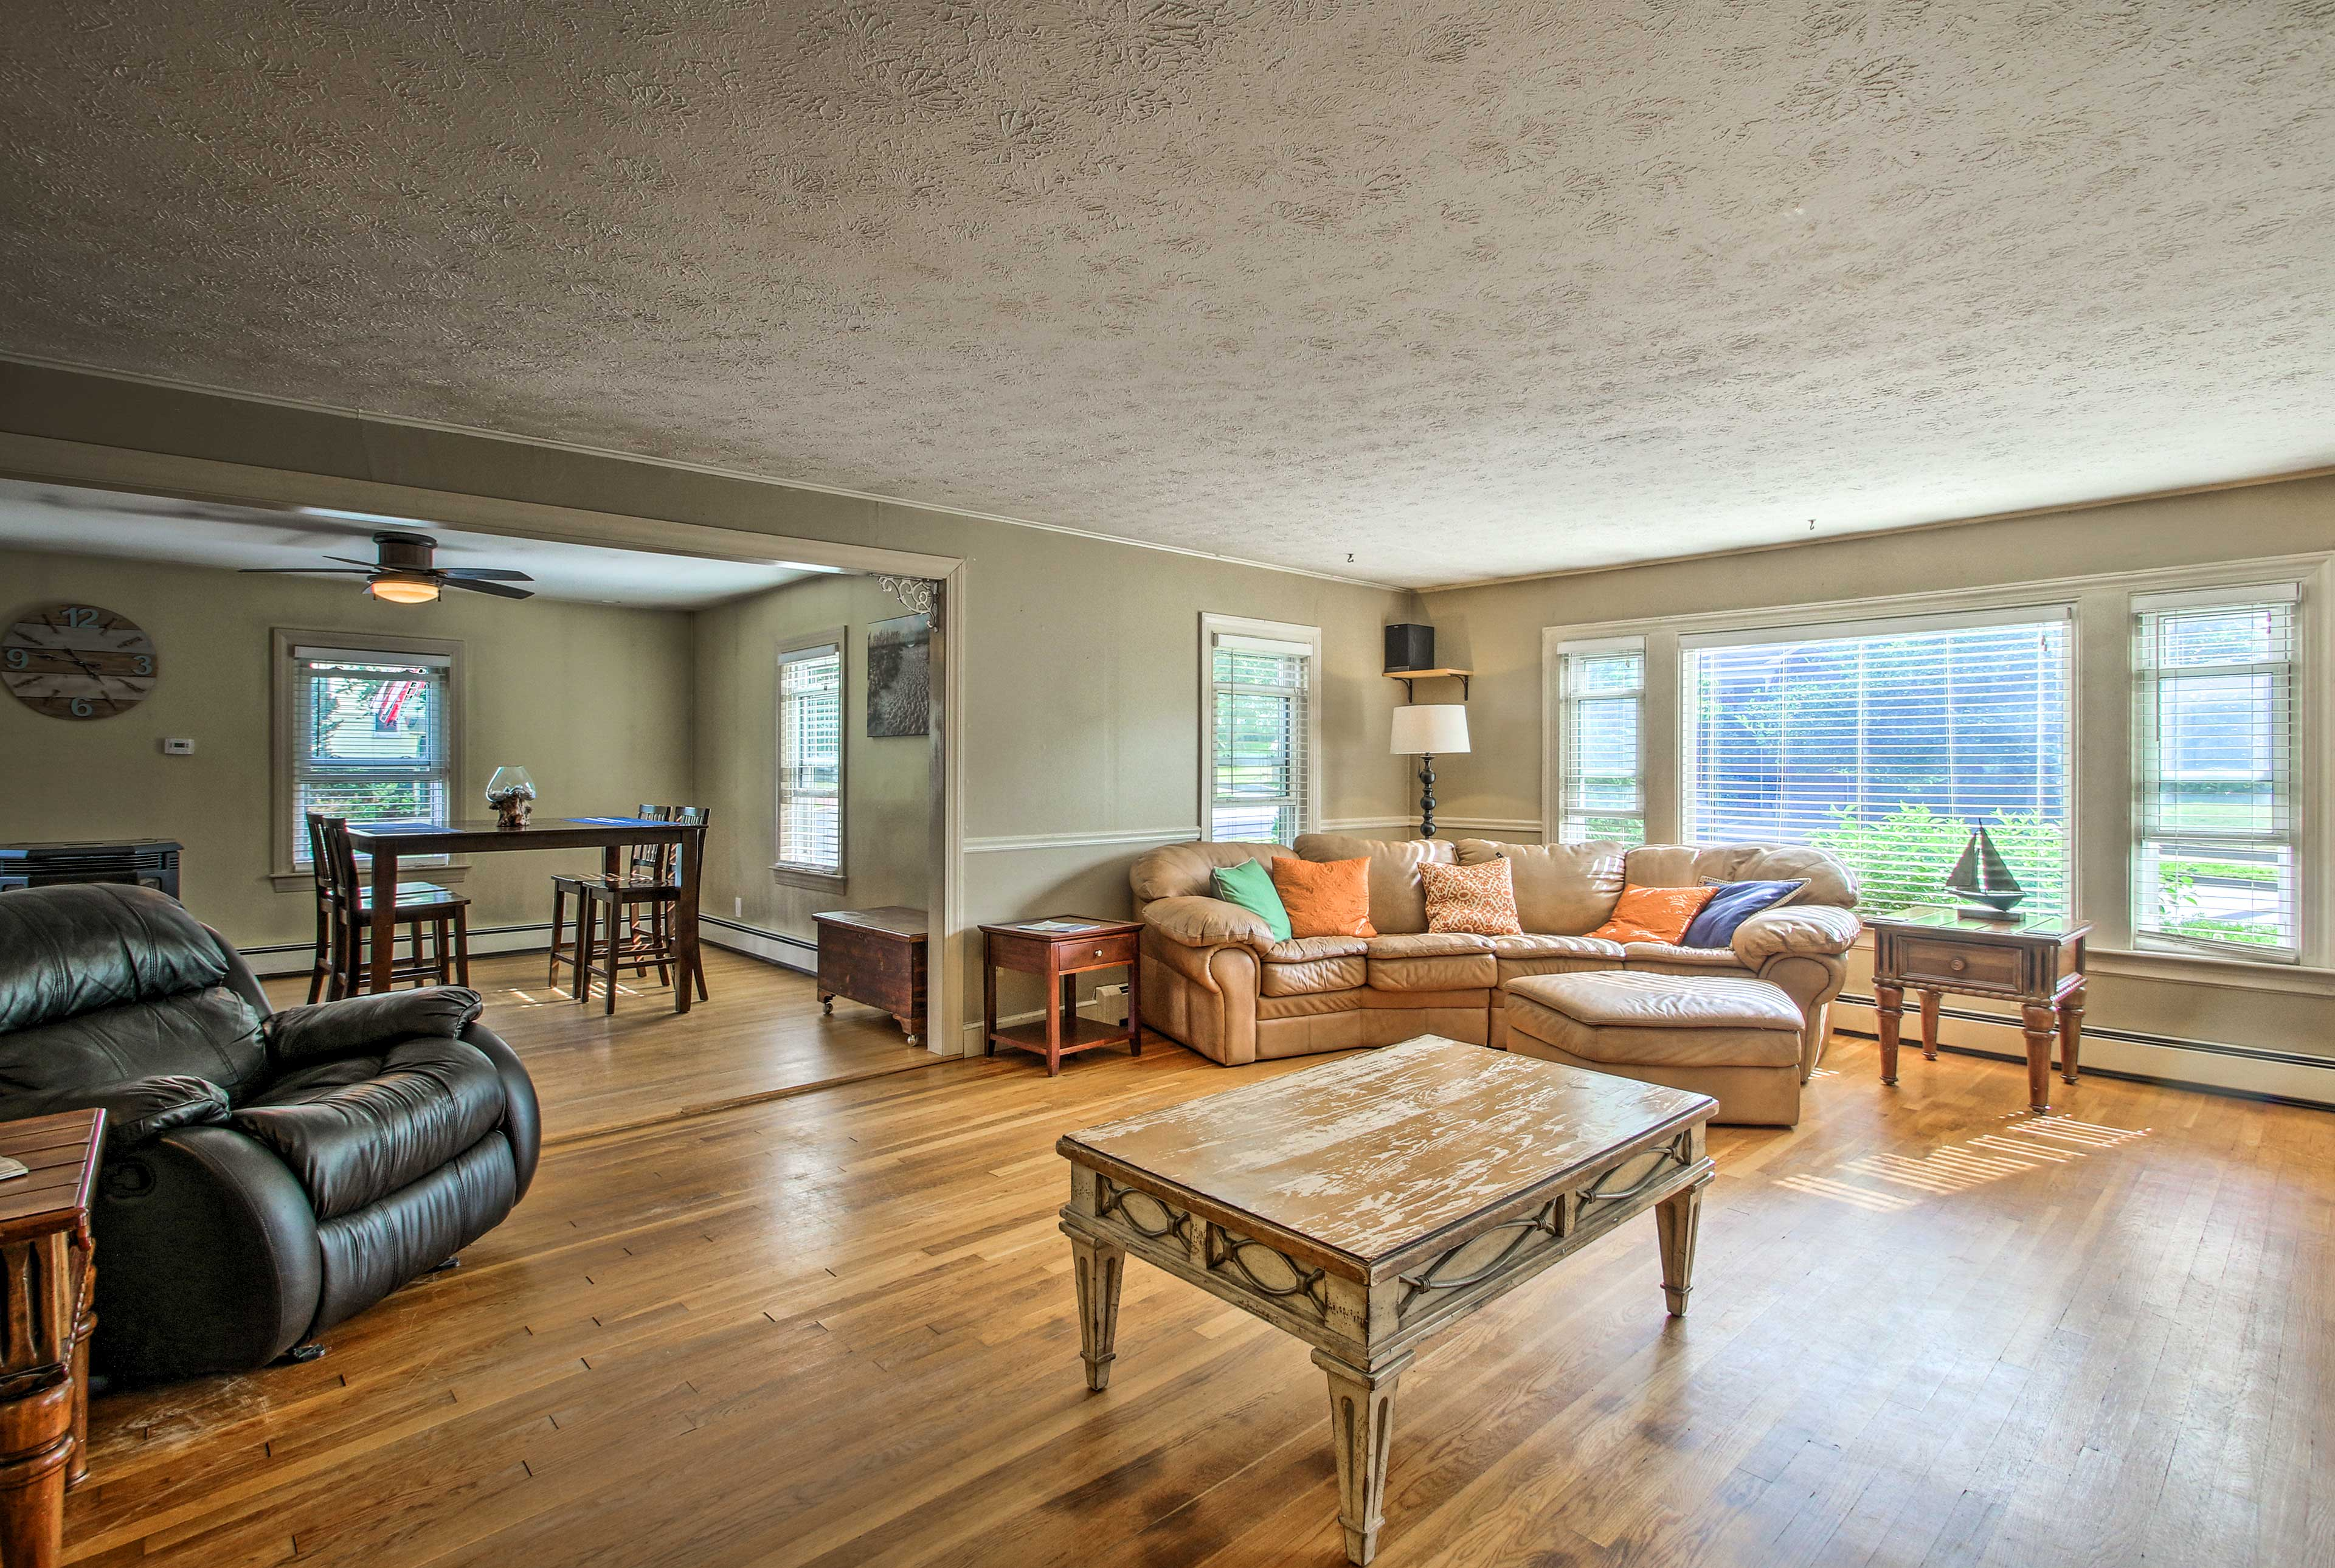 You're greeted with a spacious living room filled with cozy furnishings.